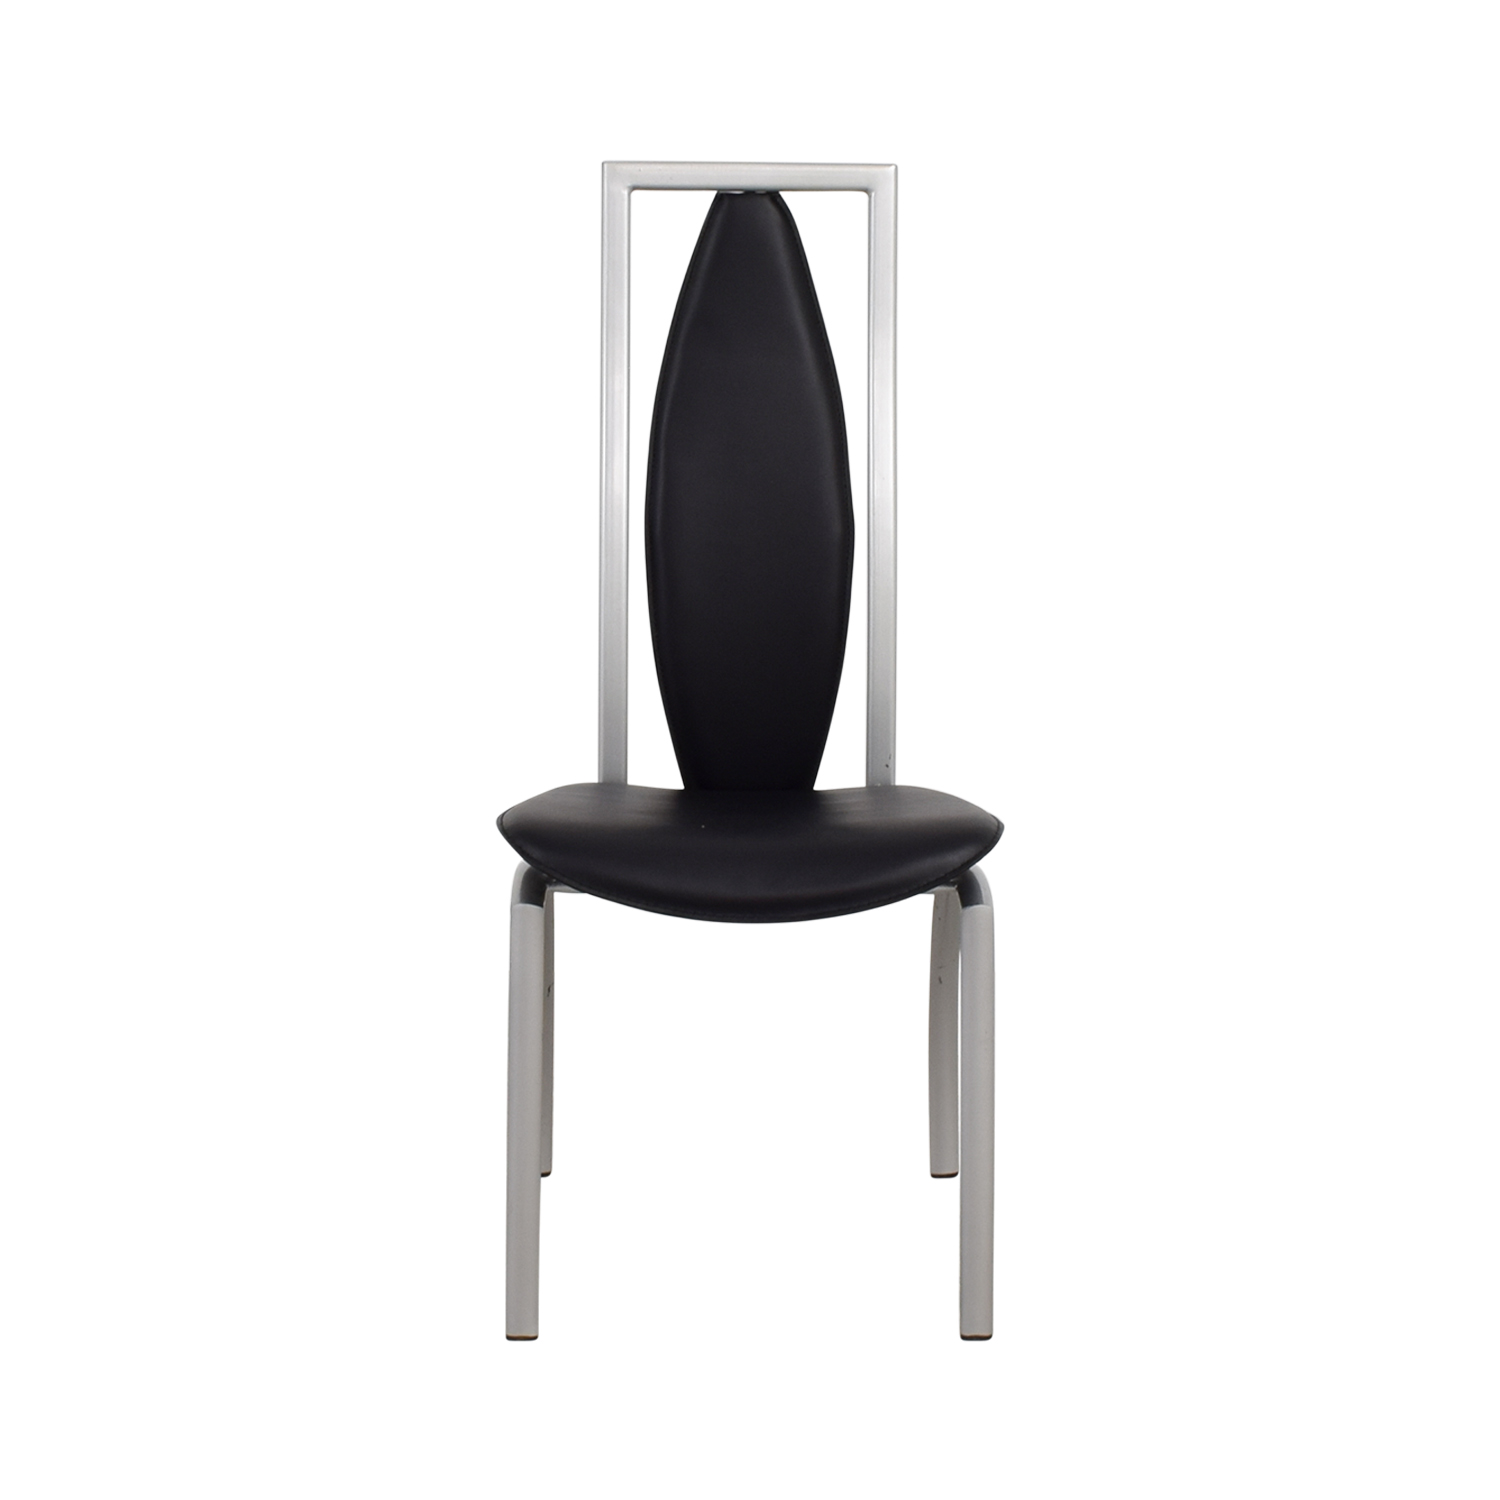 buy Art Deco Black Chair online